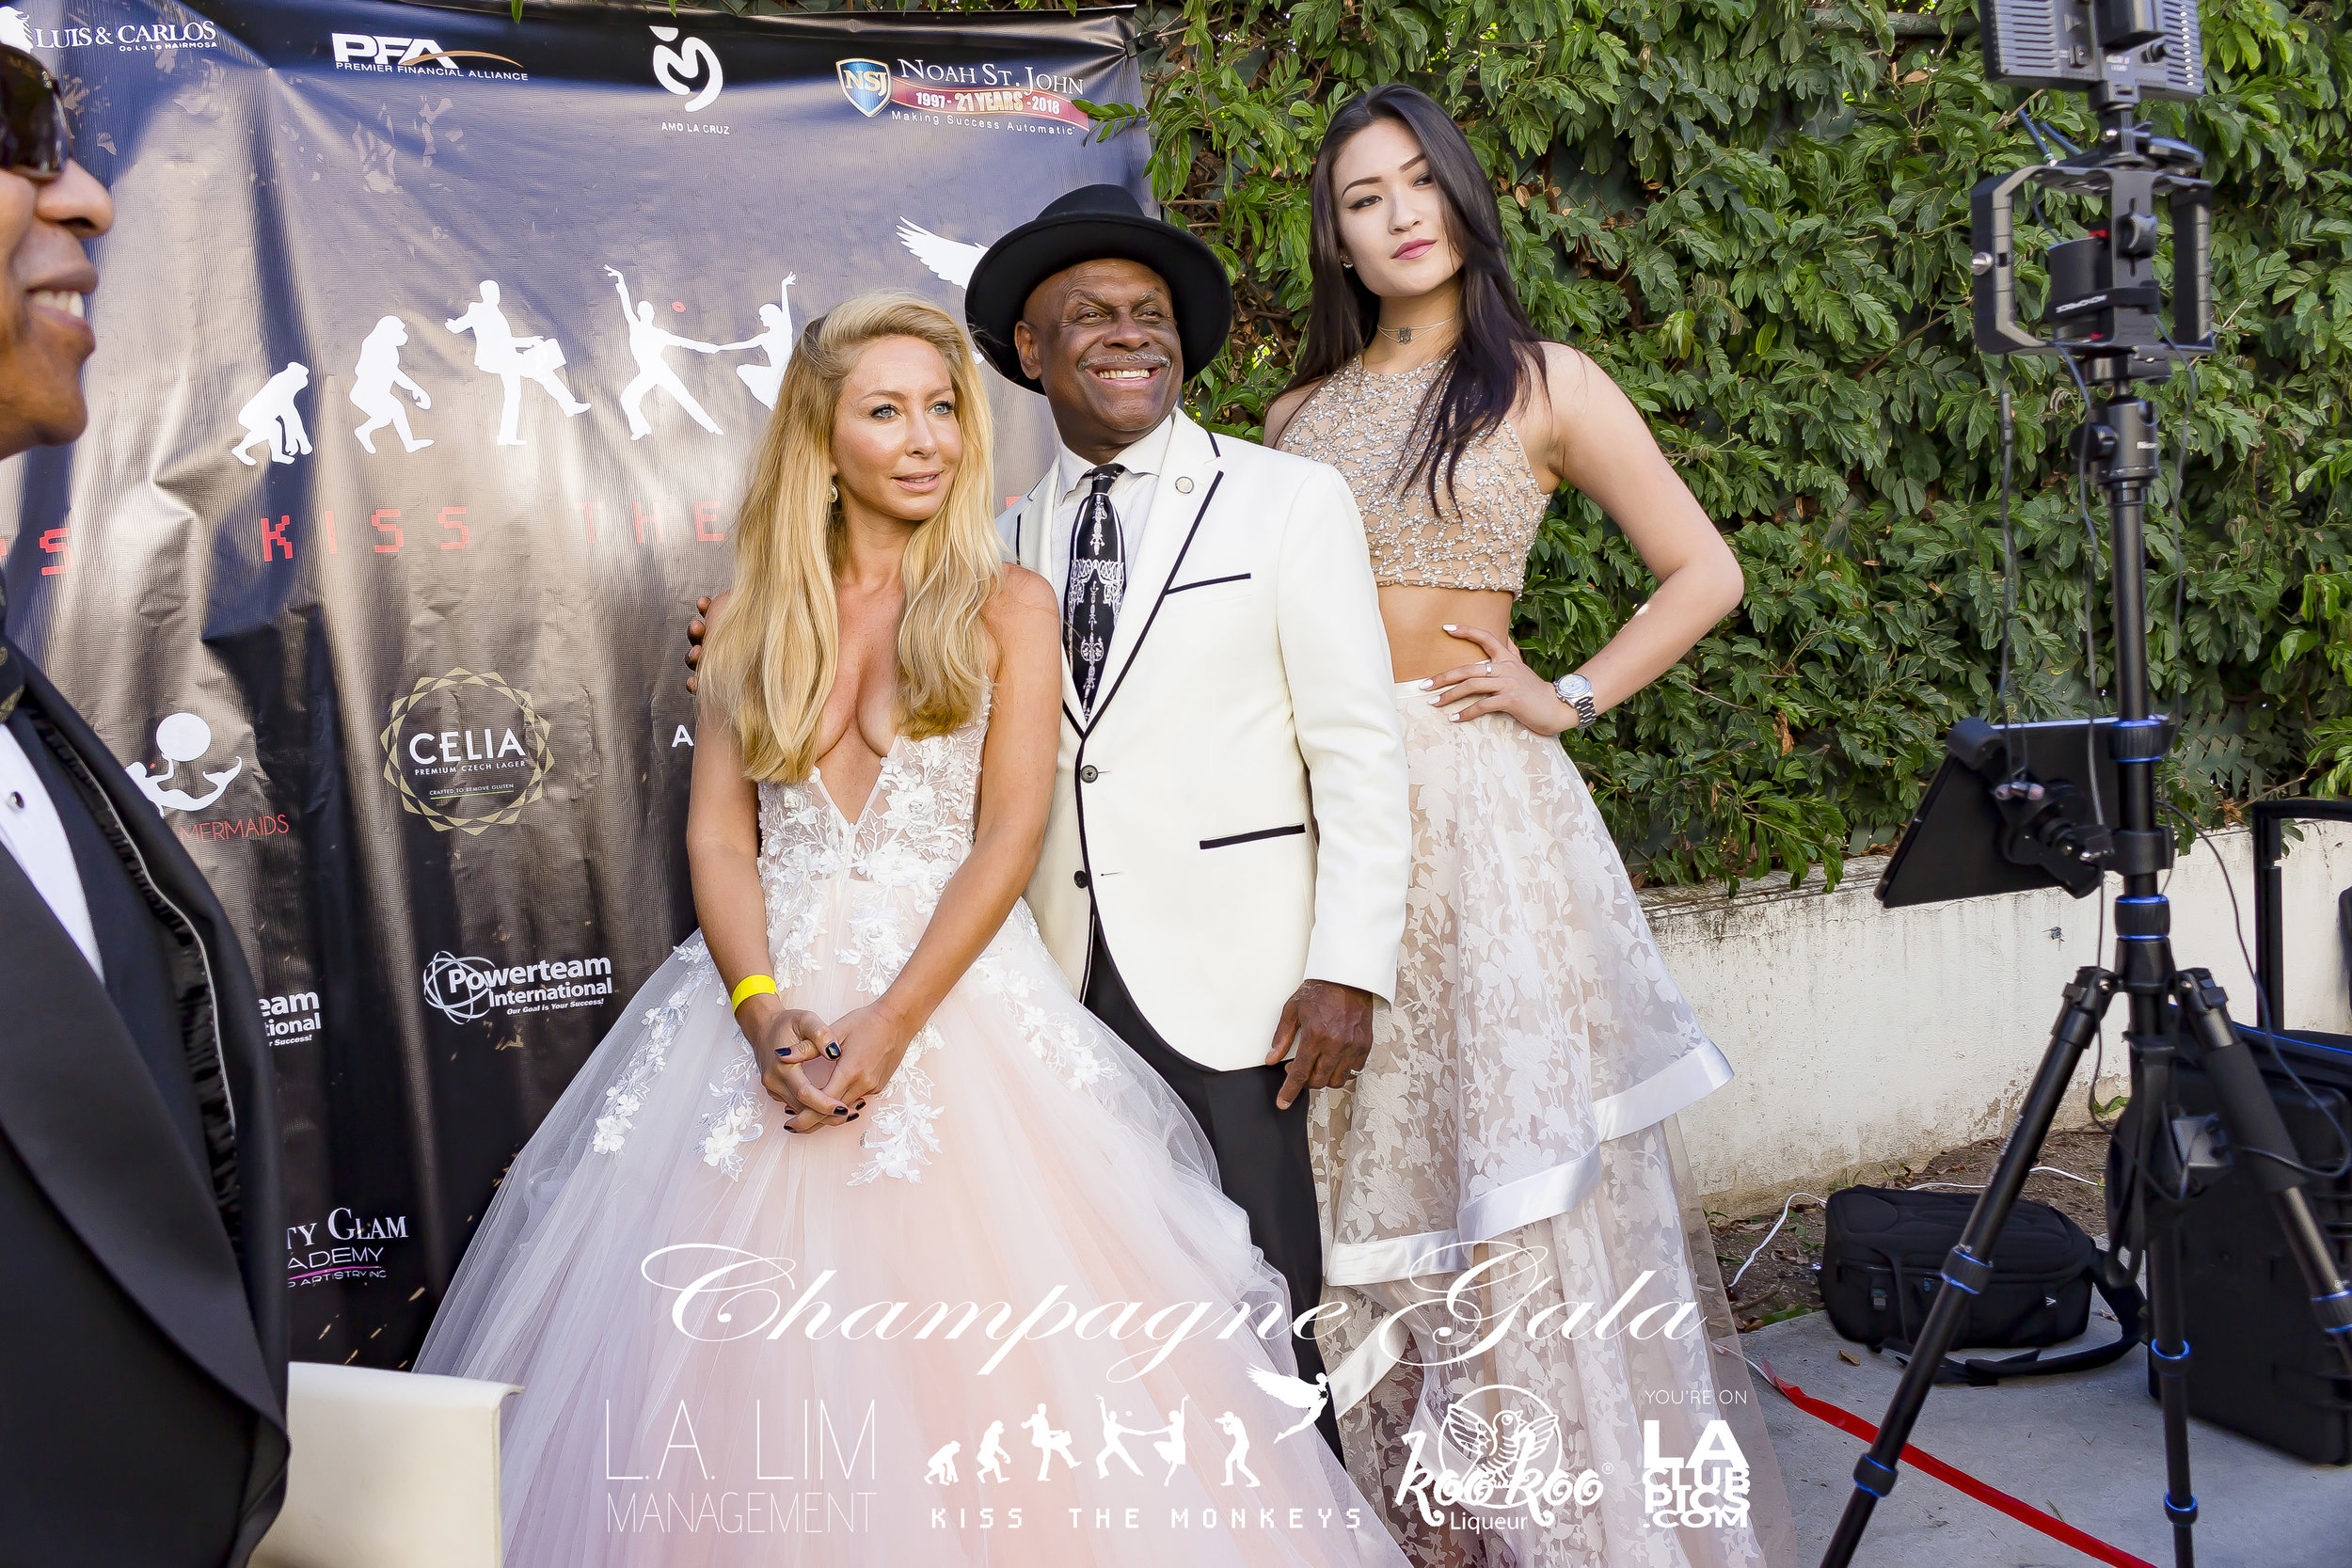 Kiss The Monkeys - Champagne Gala - 07-21-18_28.jpg